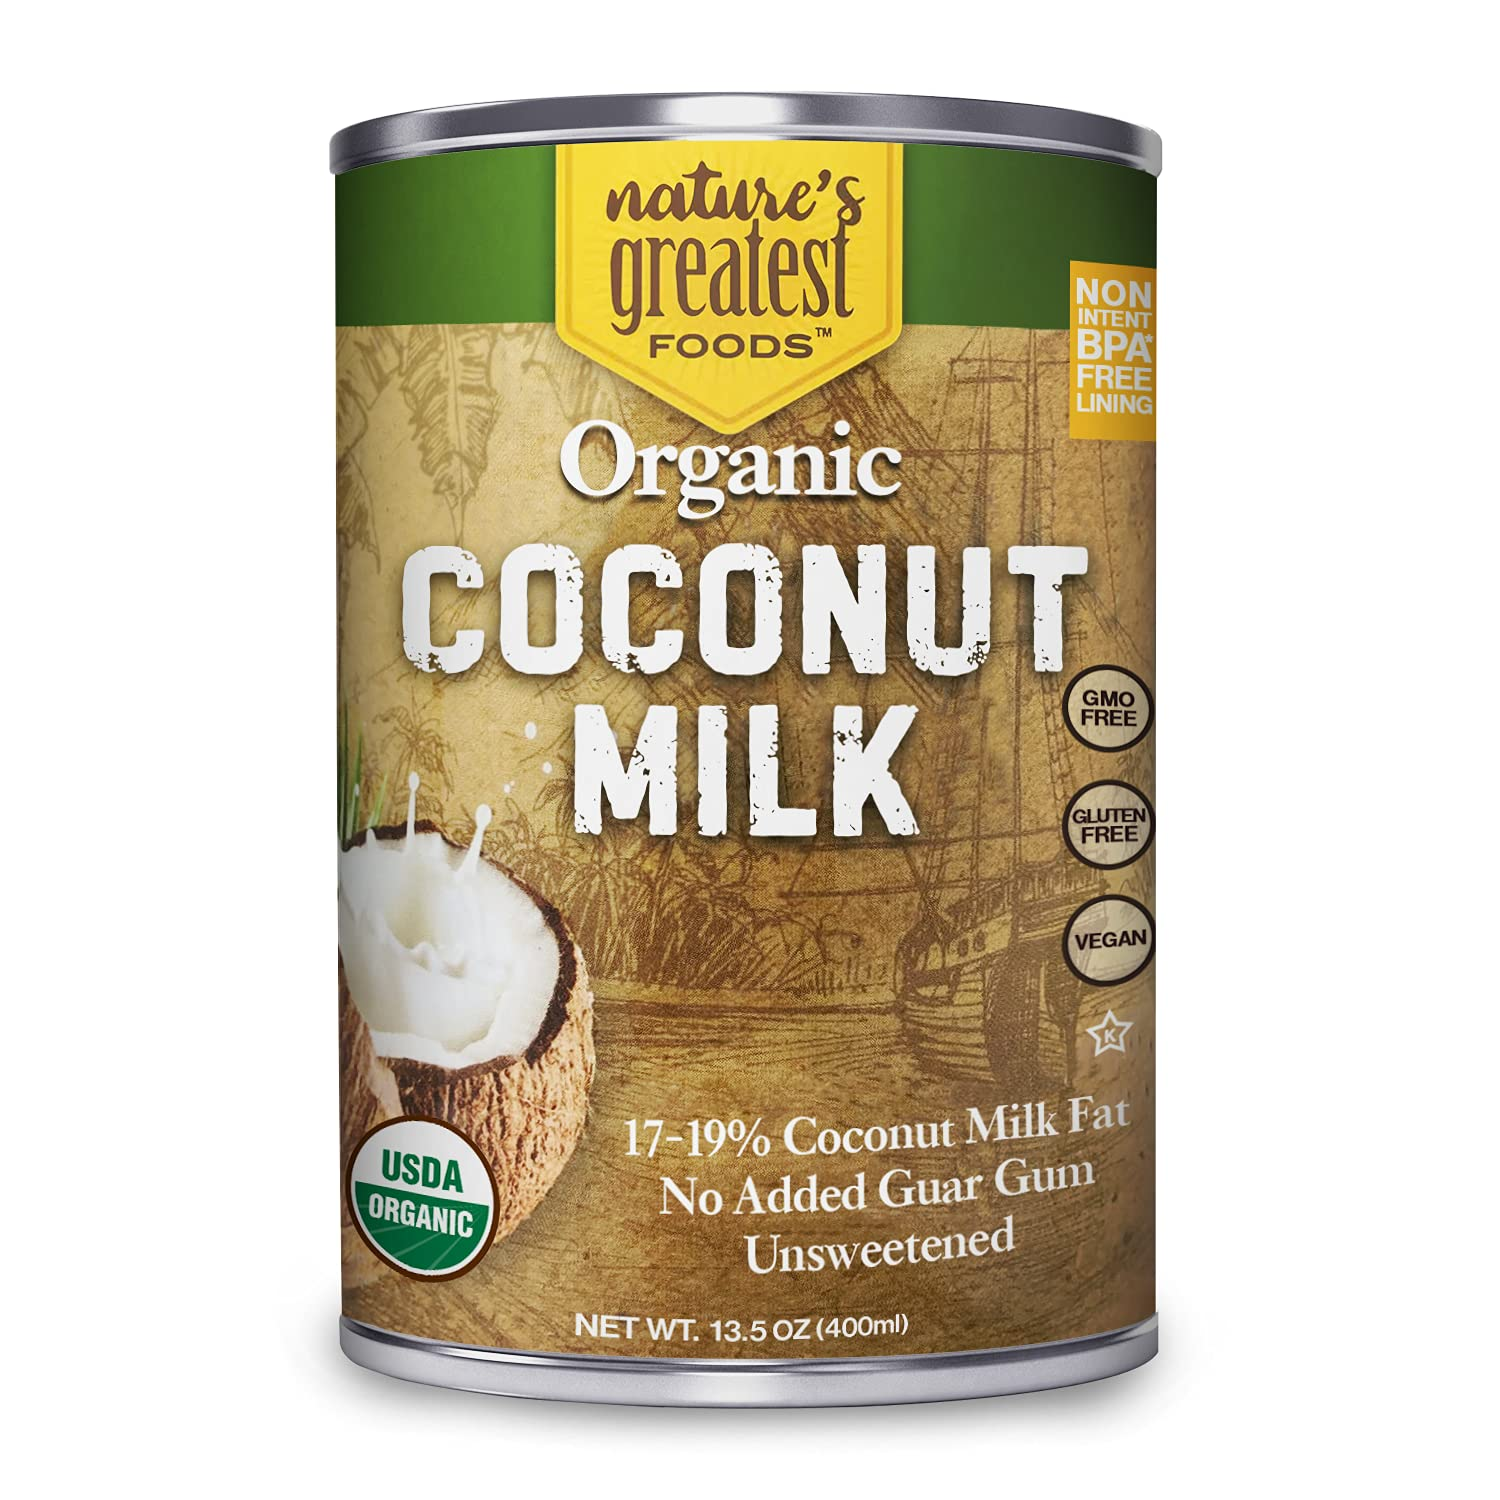 Organic Coconut Milk by Nature's Greatest Foods - 13.5 Oz - No Guar Gum, No Preservatives - Gluten Free, Vegan and Kosher - 17-19% Coconut Milk Fat, Unsweetened (6-Pack)